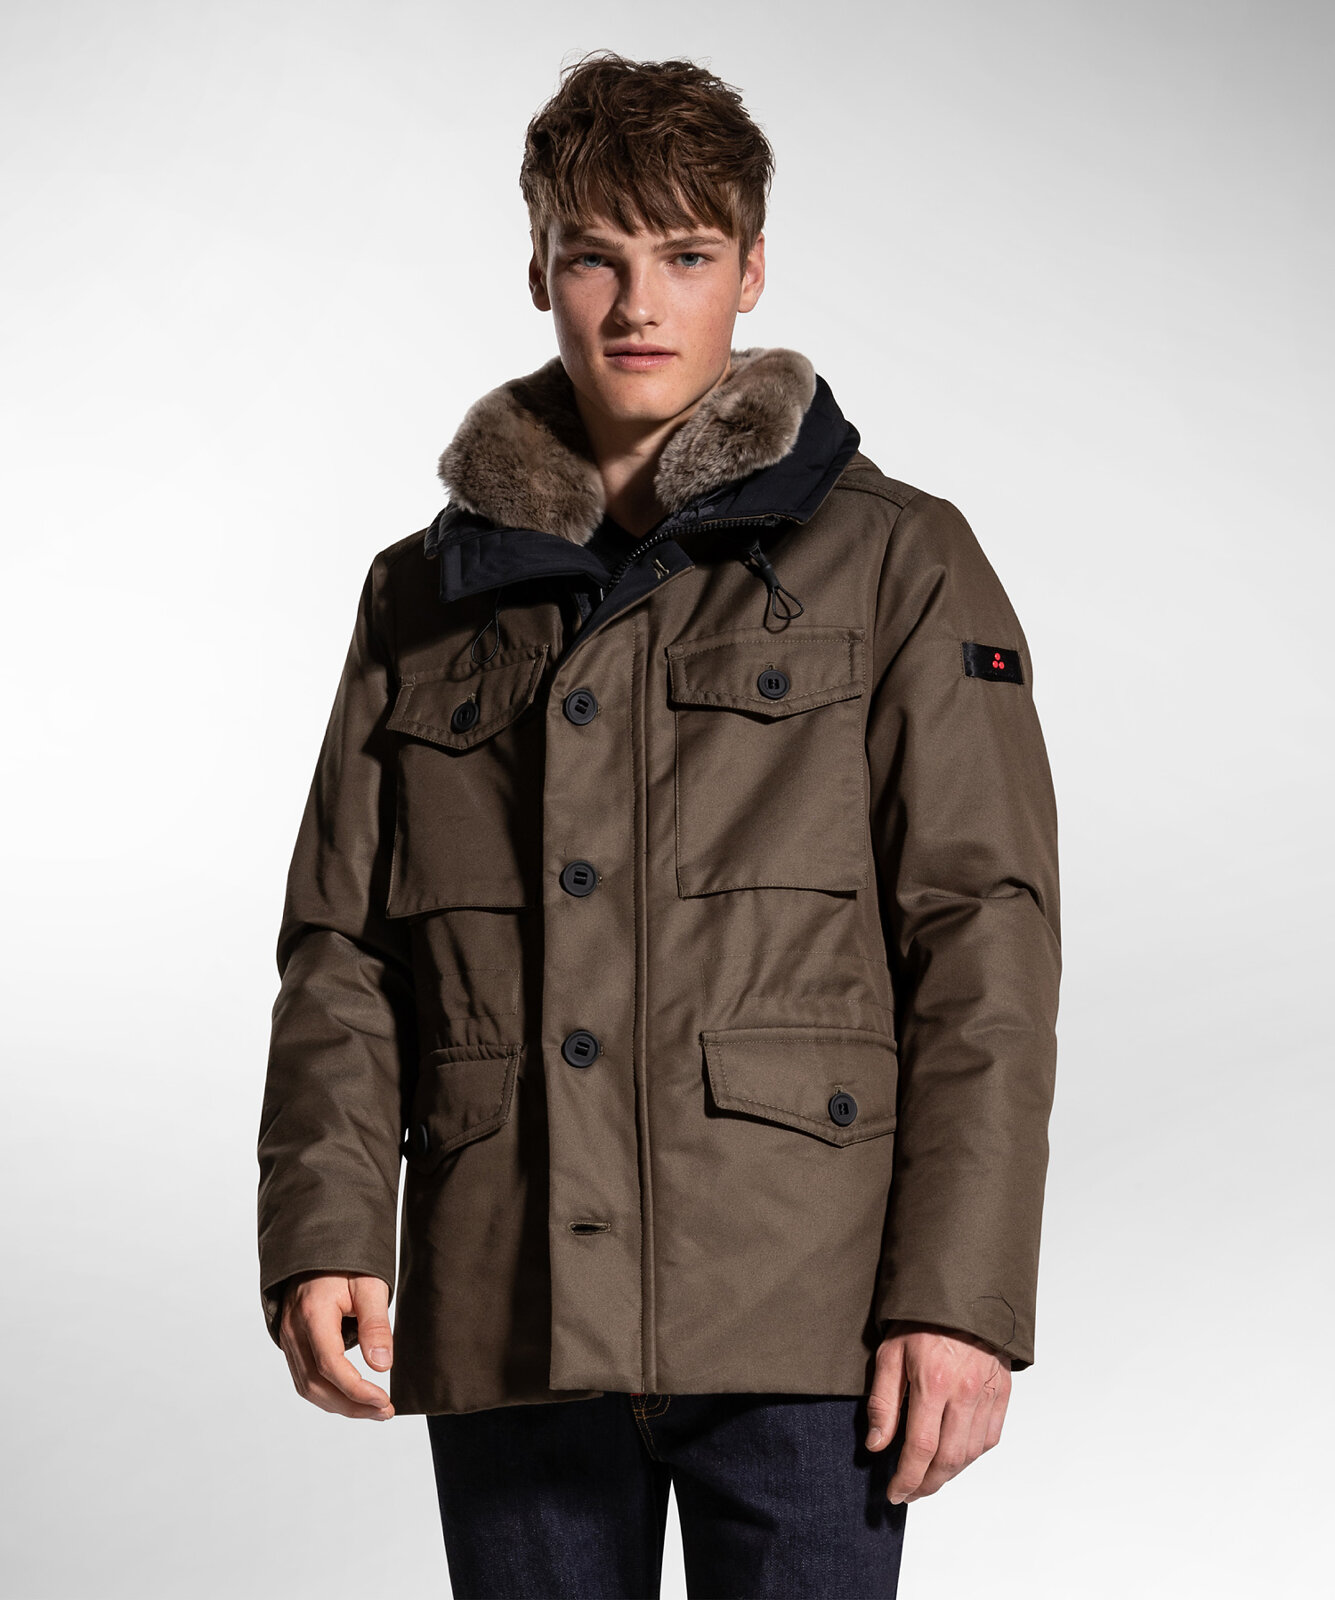 Field Jacket In Technical Fabric - Peuterey